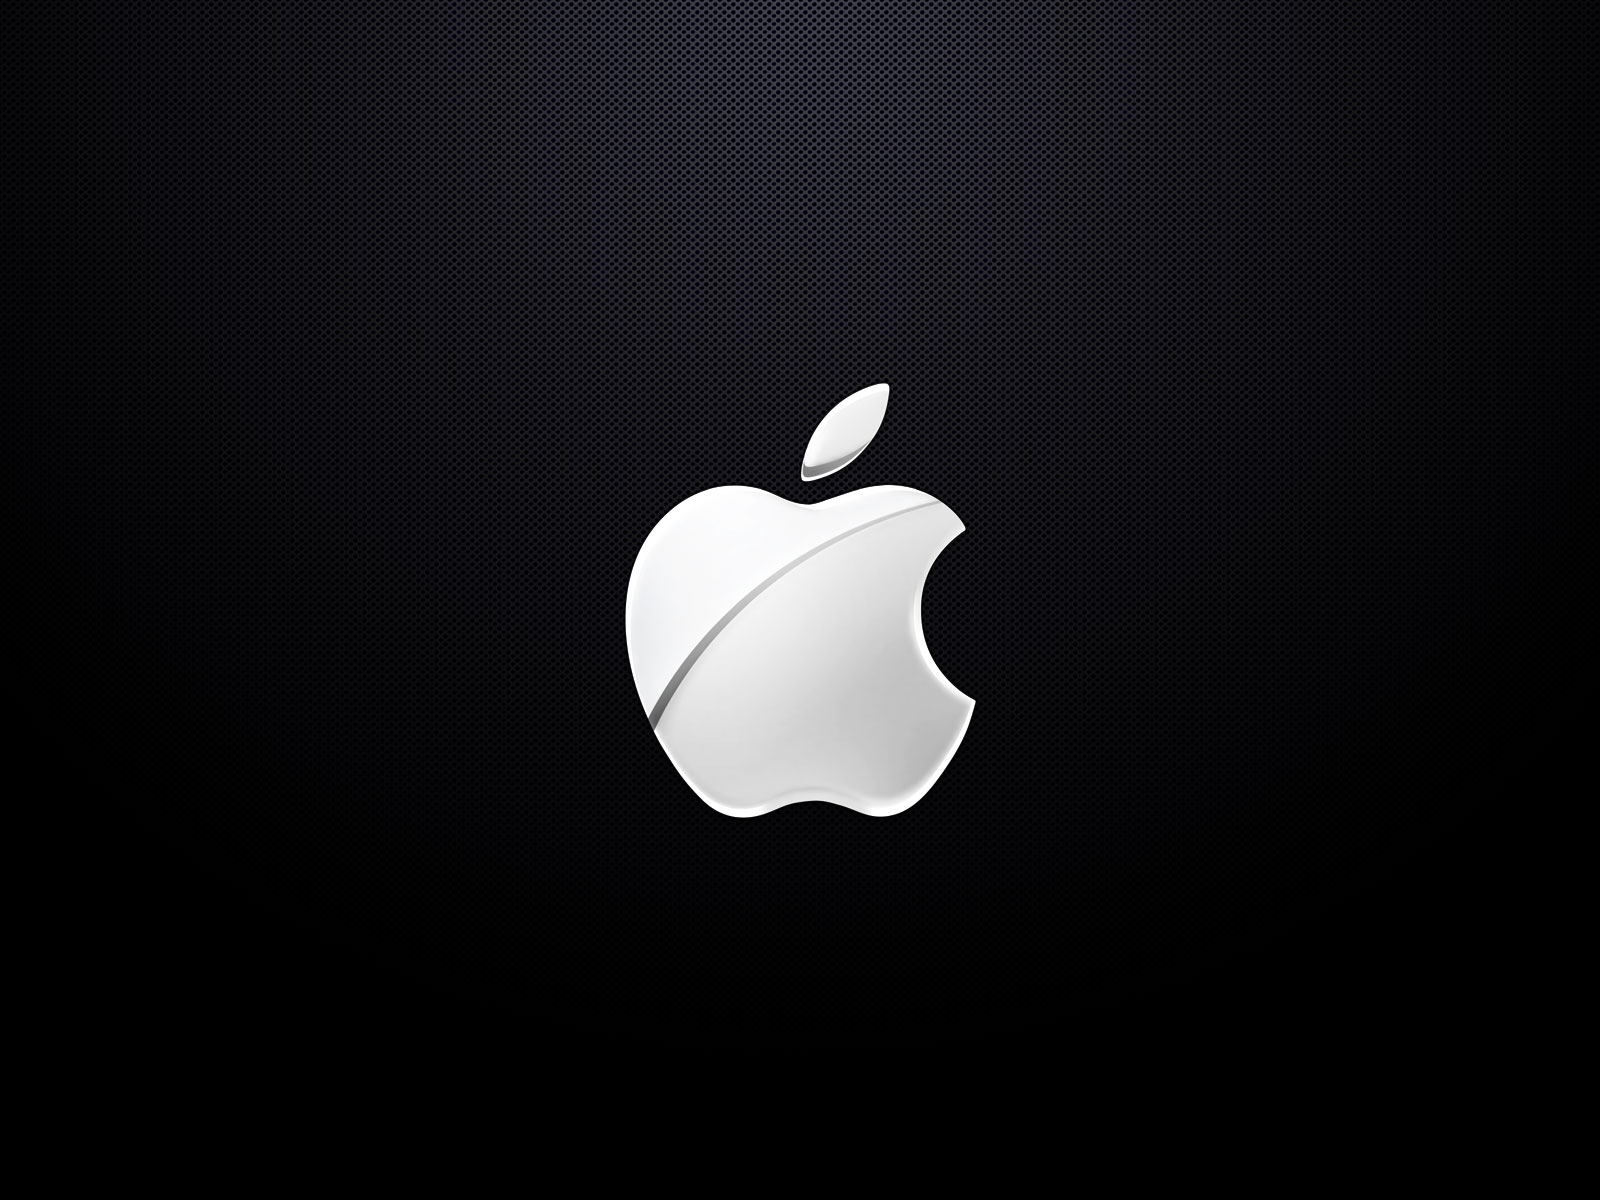 http://4.bp.blogspot.com/-M5H9h7mIB9s/To9IOyrageI/AAAAAAAAHbs/8_mewcz0Jtw/s1600/white-apple-logo-wallpaper.jpg